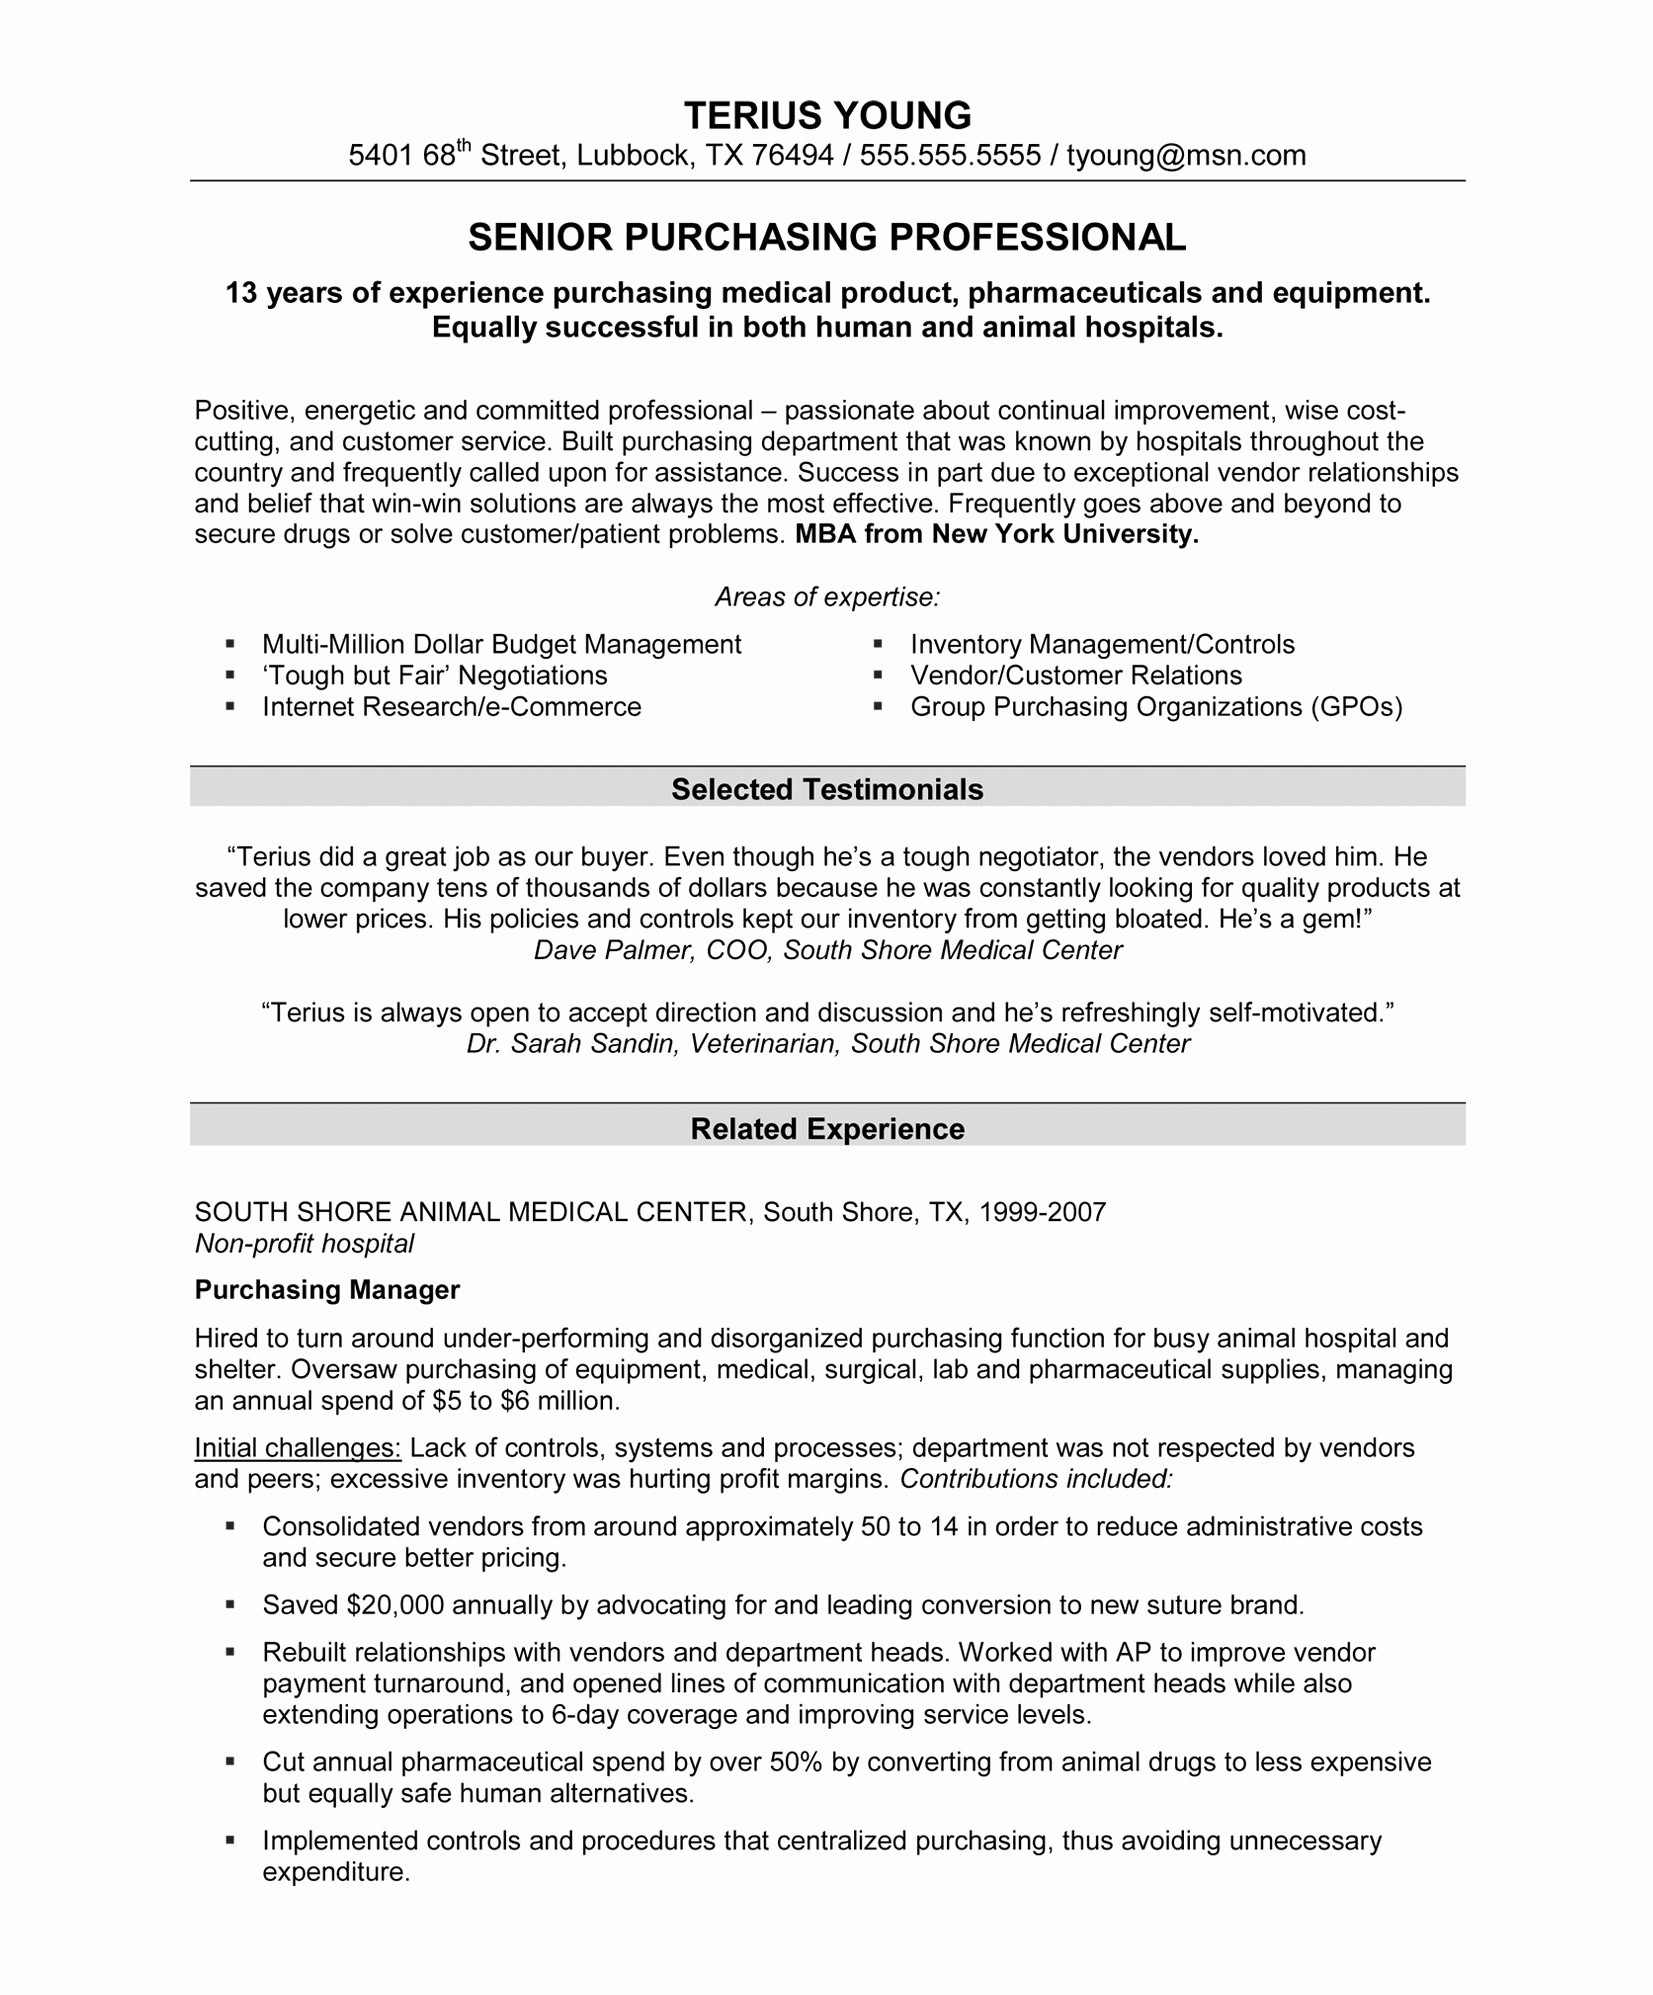 My Perfect Resume Prices - Free Downloads My Perfect Resume Customer Service Number